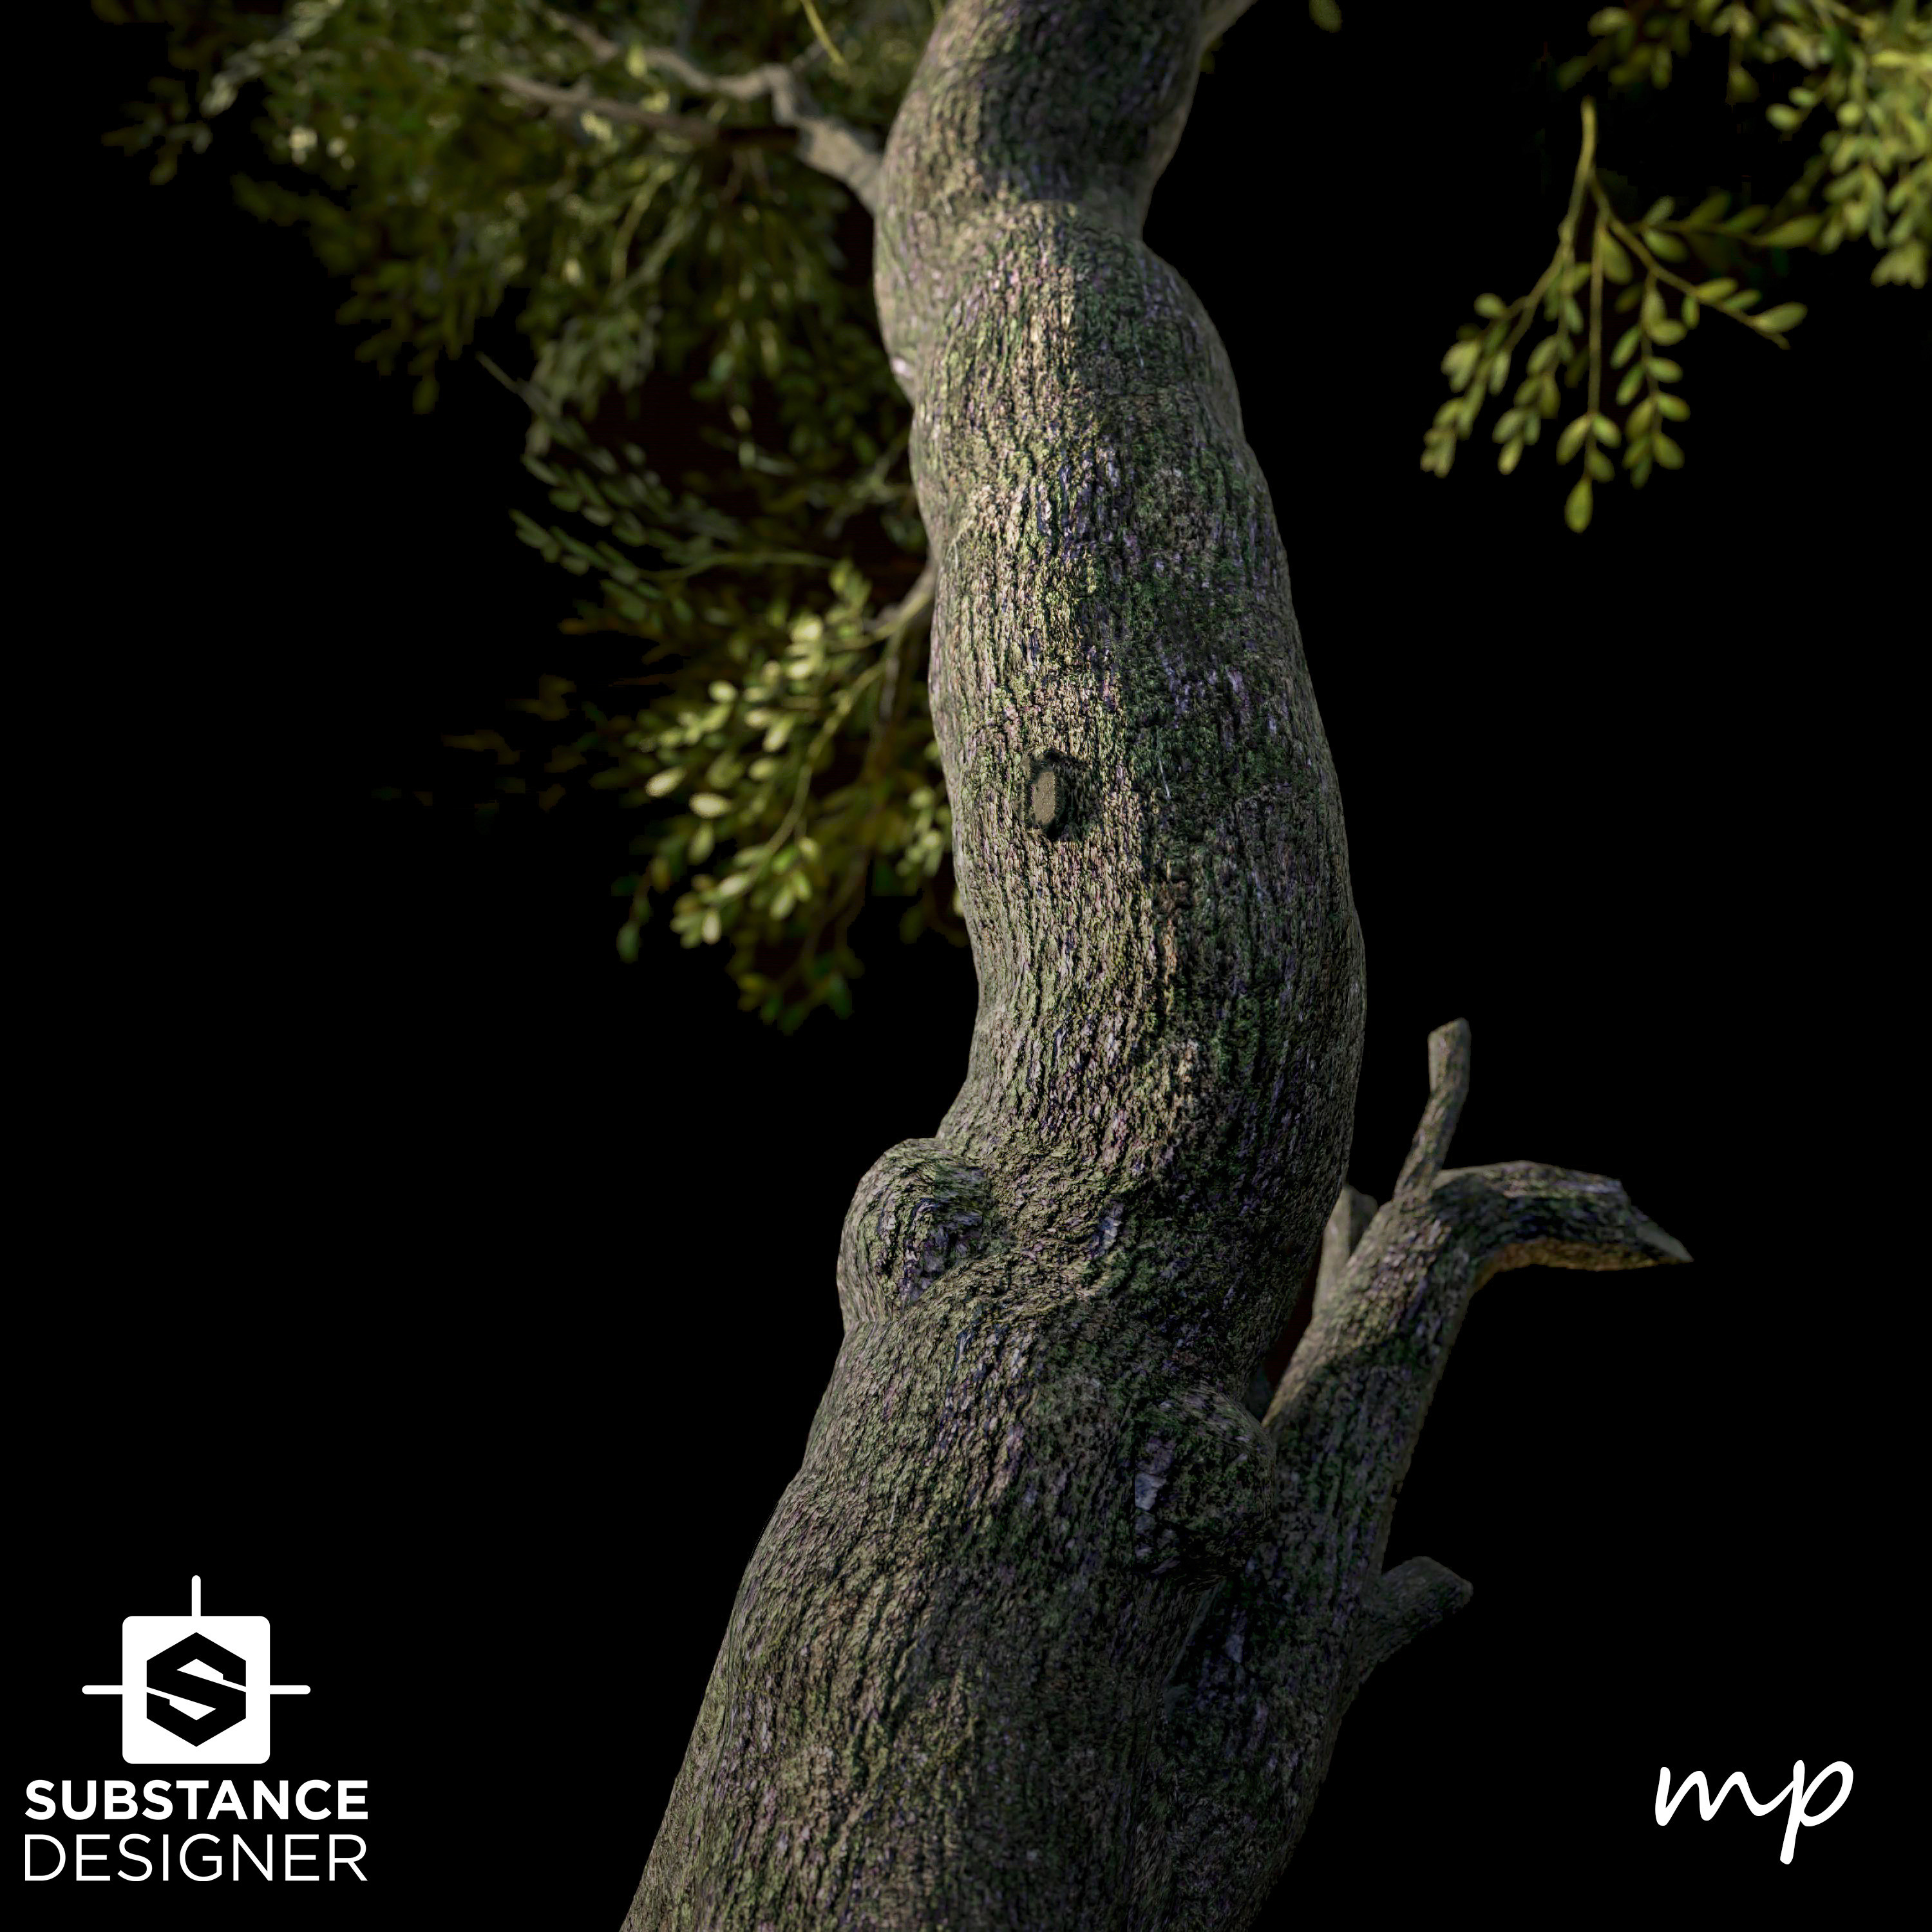 Tree Bark preview Preset for substance designer. Nice for previewing tiling/etc.